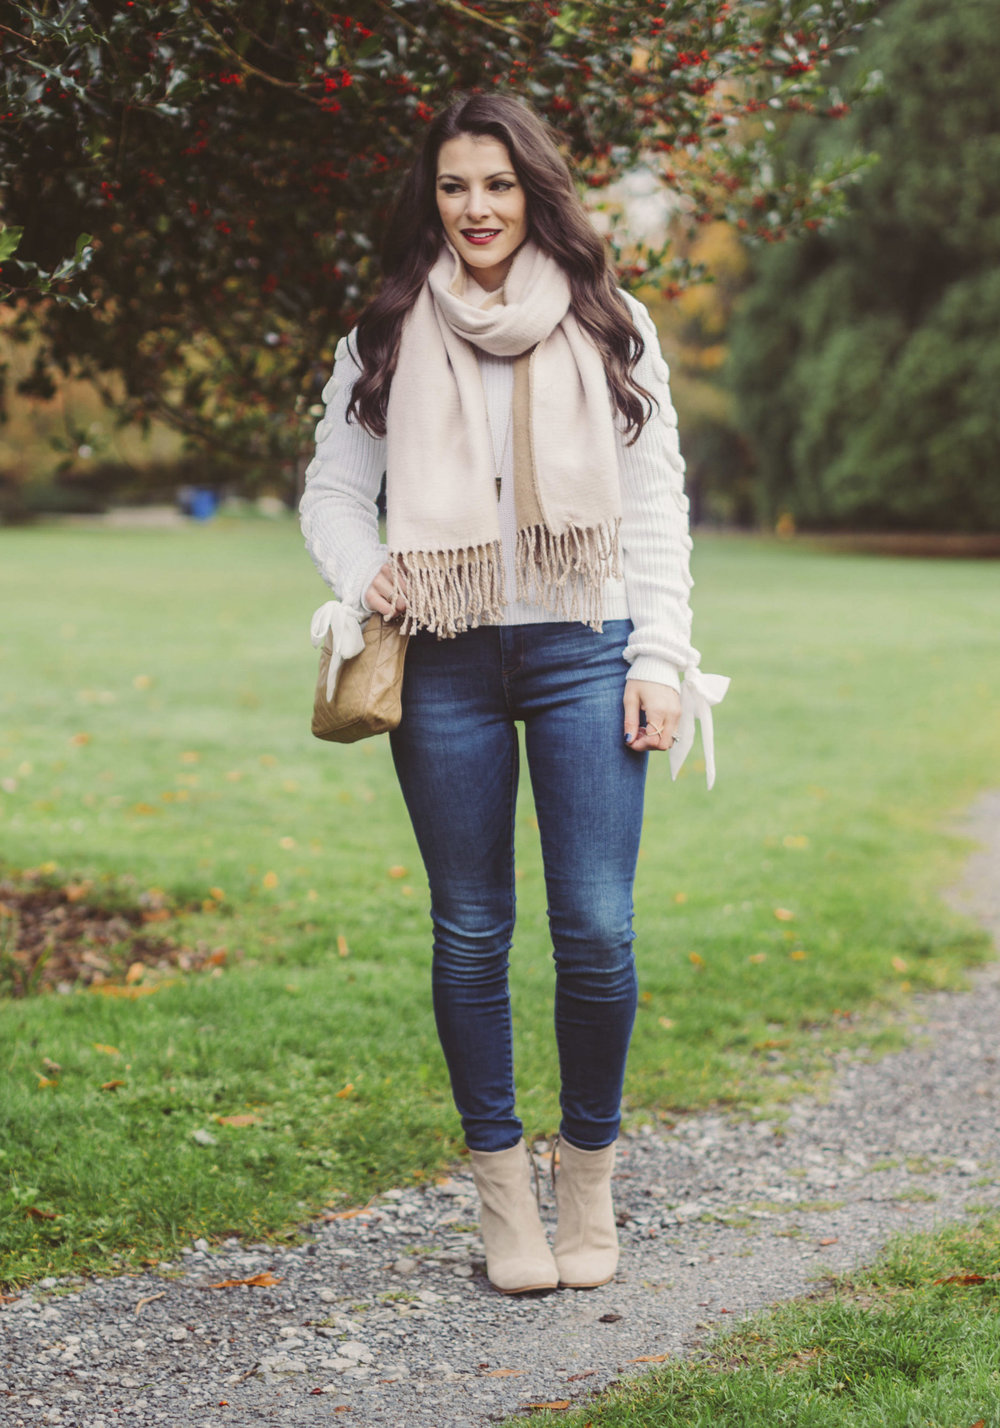 Cute fall outfits, English Factory Lace Up Sleeve Sweater, Vintage Chanel Handbag, Caslon Skinny Jeans, Toms Lunata Booties, & Scarf Similar to Free People Brushed Scarf